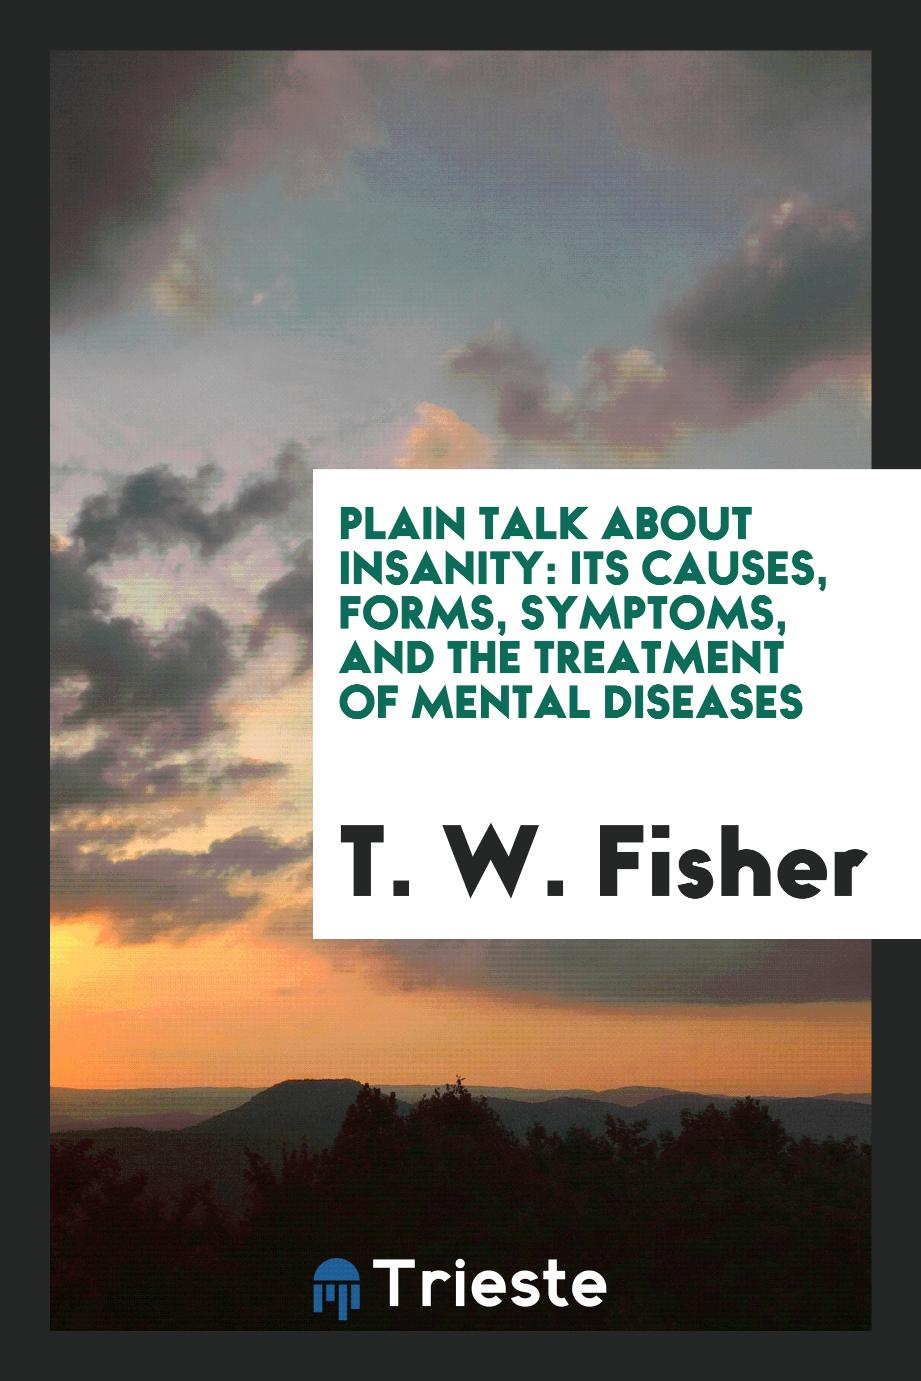 Plain Talk About Insanity: Its Causes, Forms, Symptoms, and the Treatment of Mental Diseases